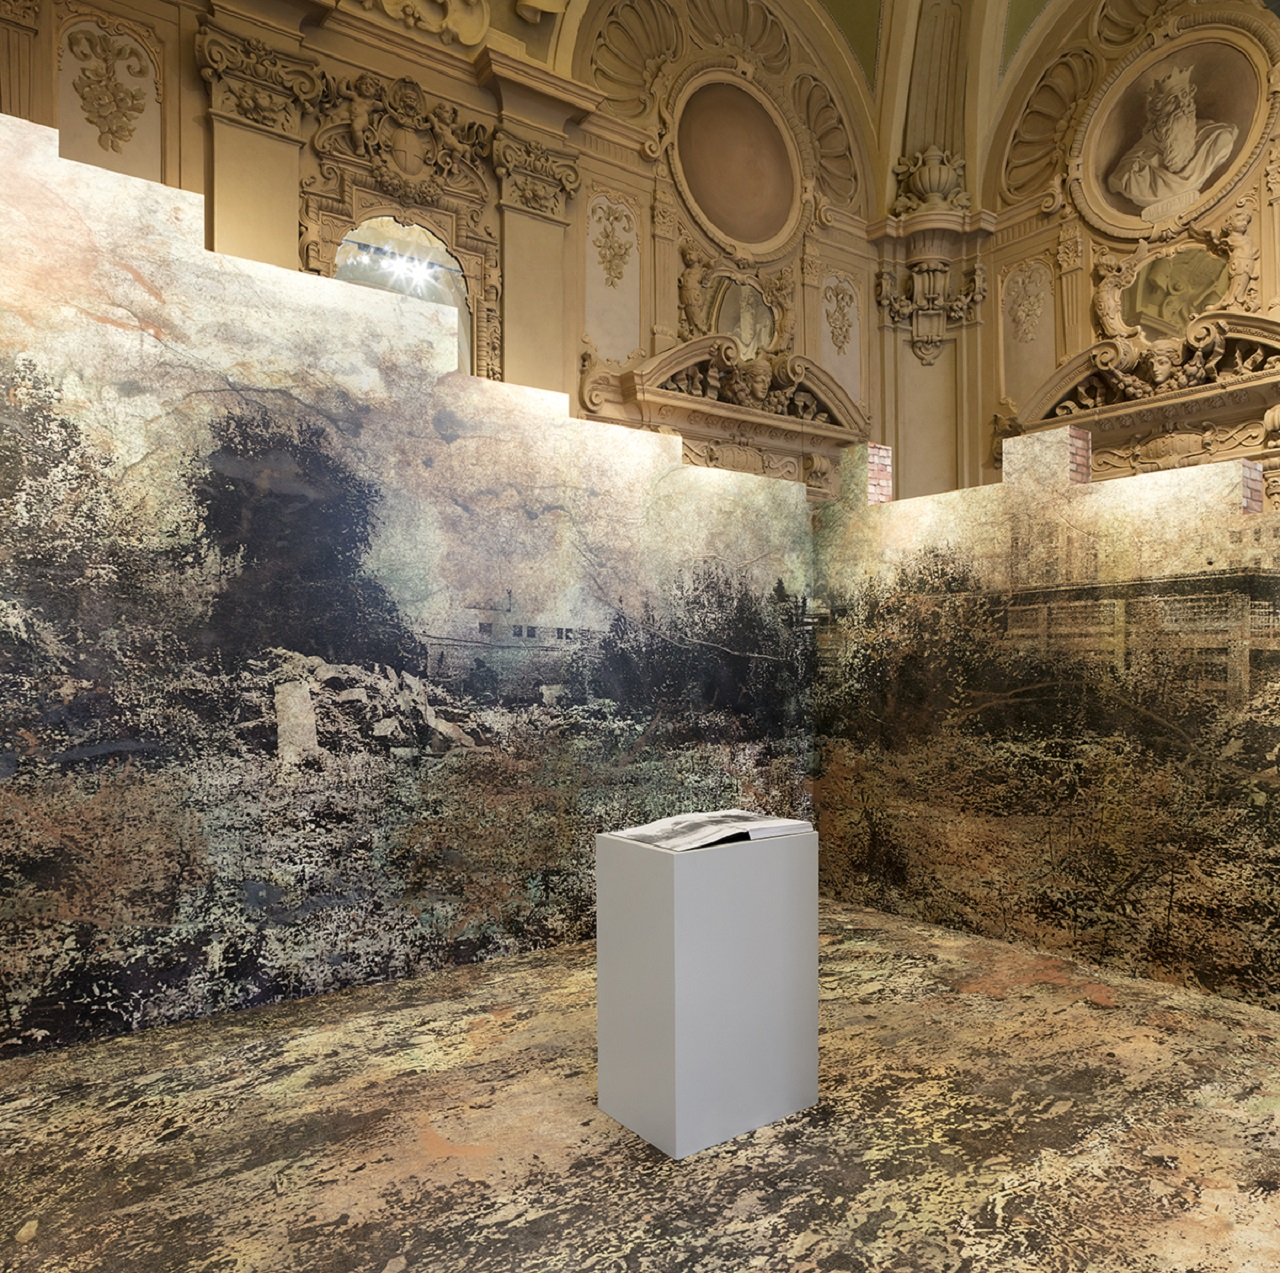 The ballad of forgotten places di Botto&Bruno entra nei Musei Reali di Torino